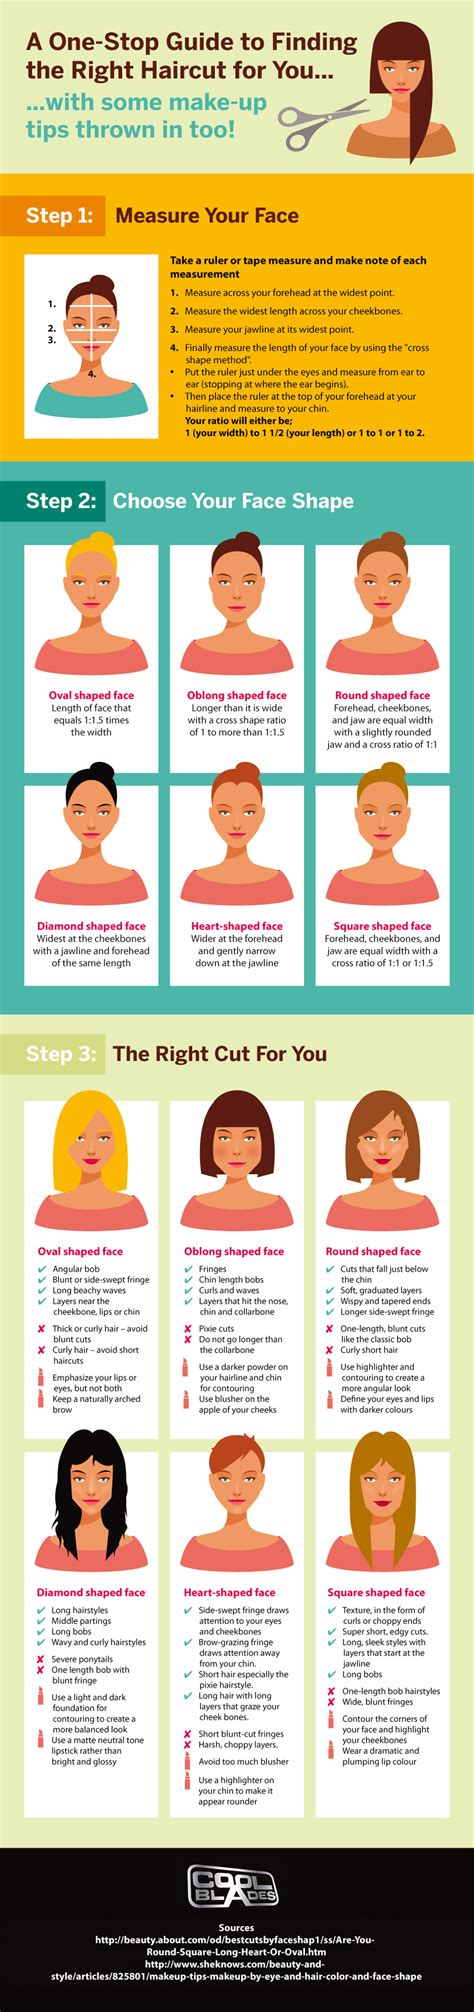 how to find the perfect haircut for your face shape your one stop guide to finding the perfect haircut for you